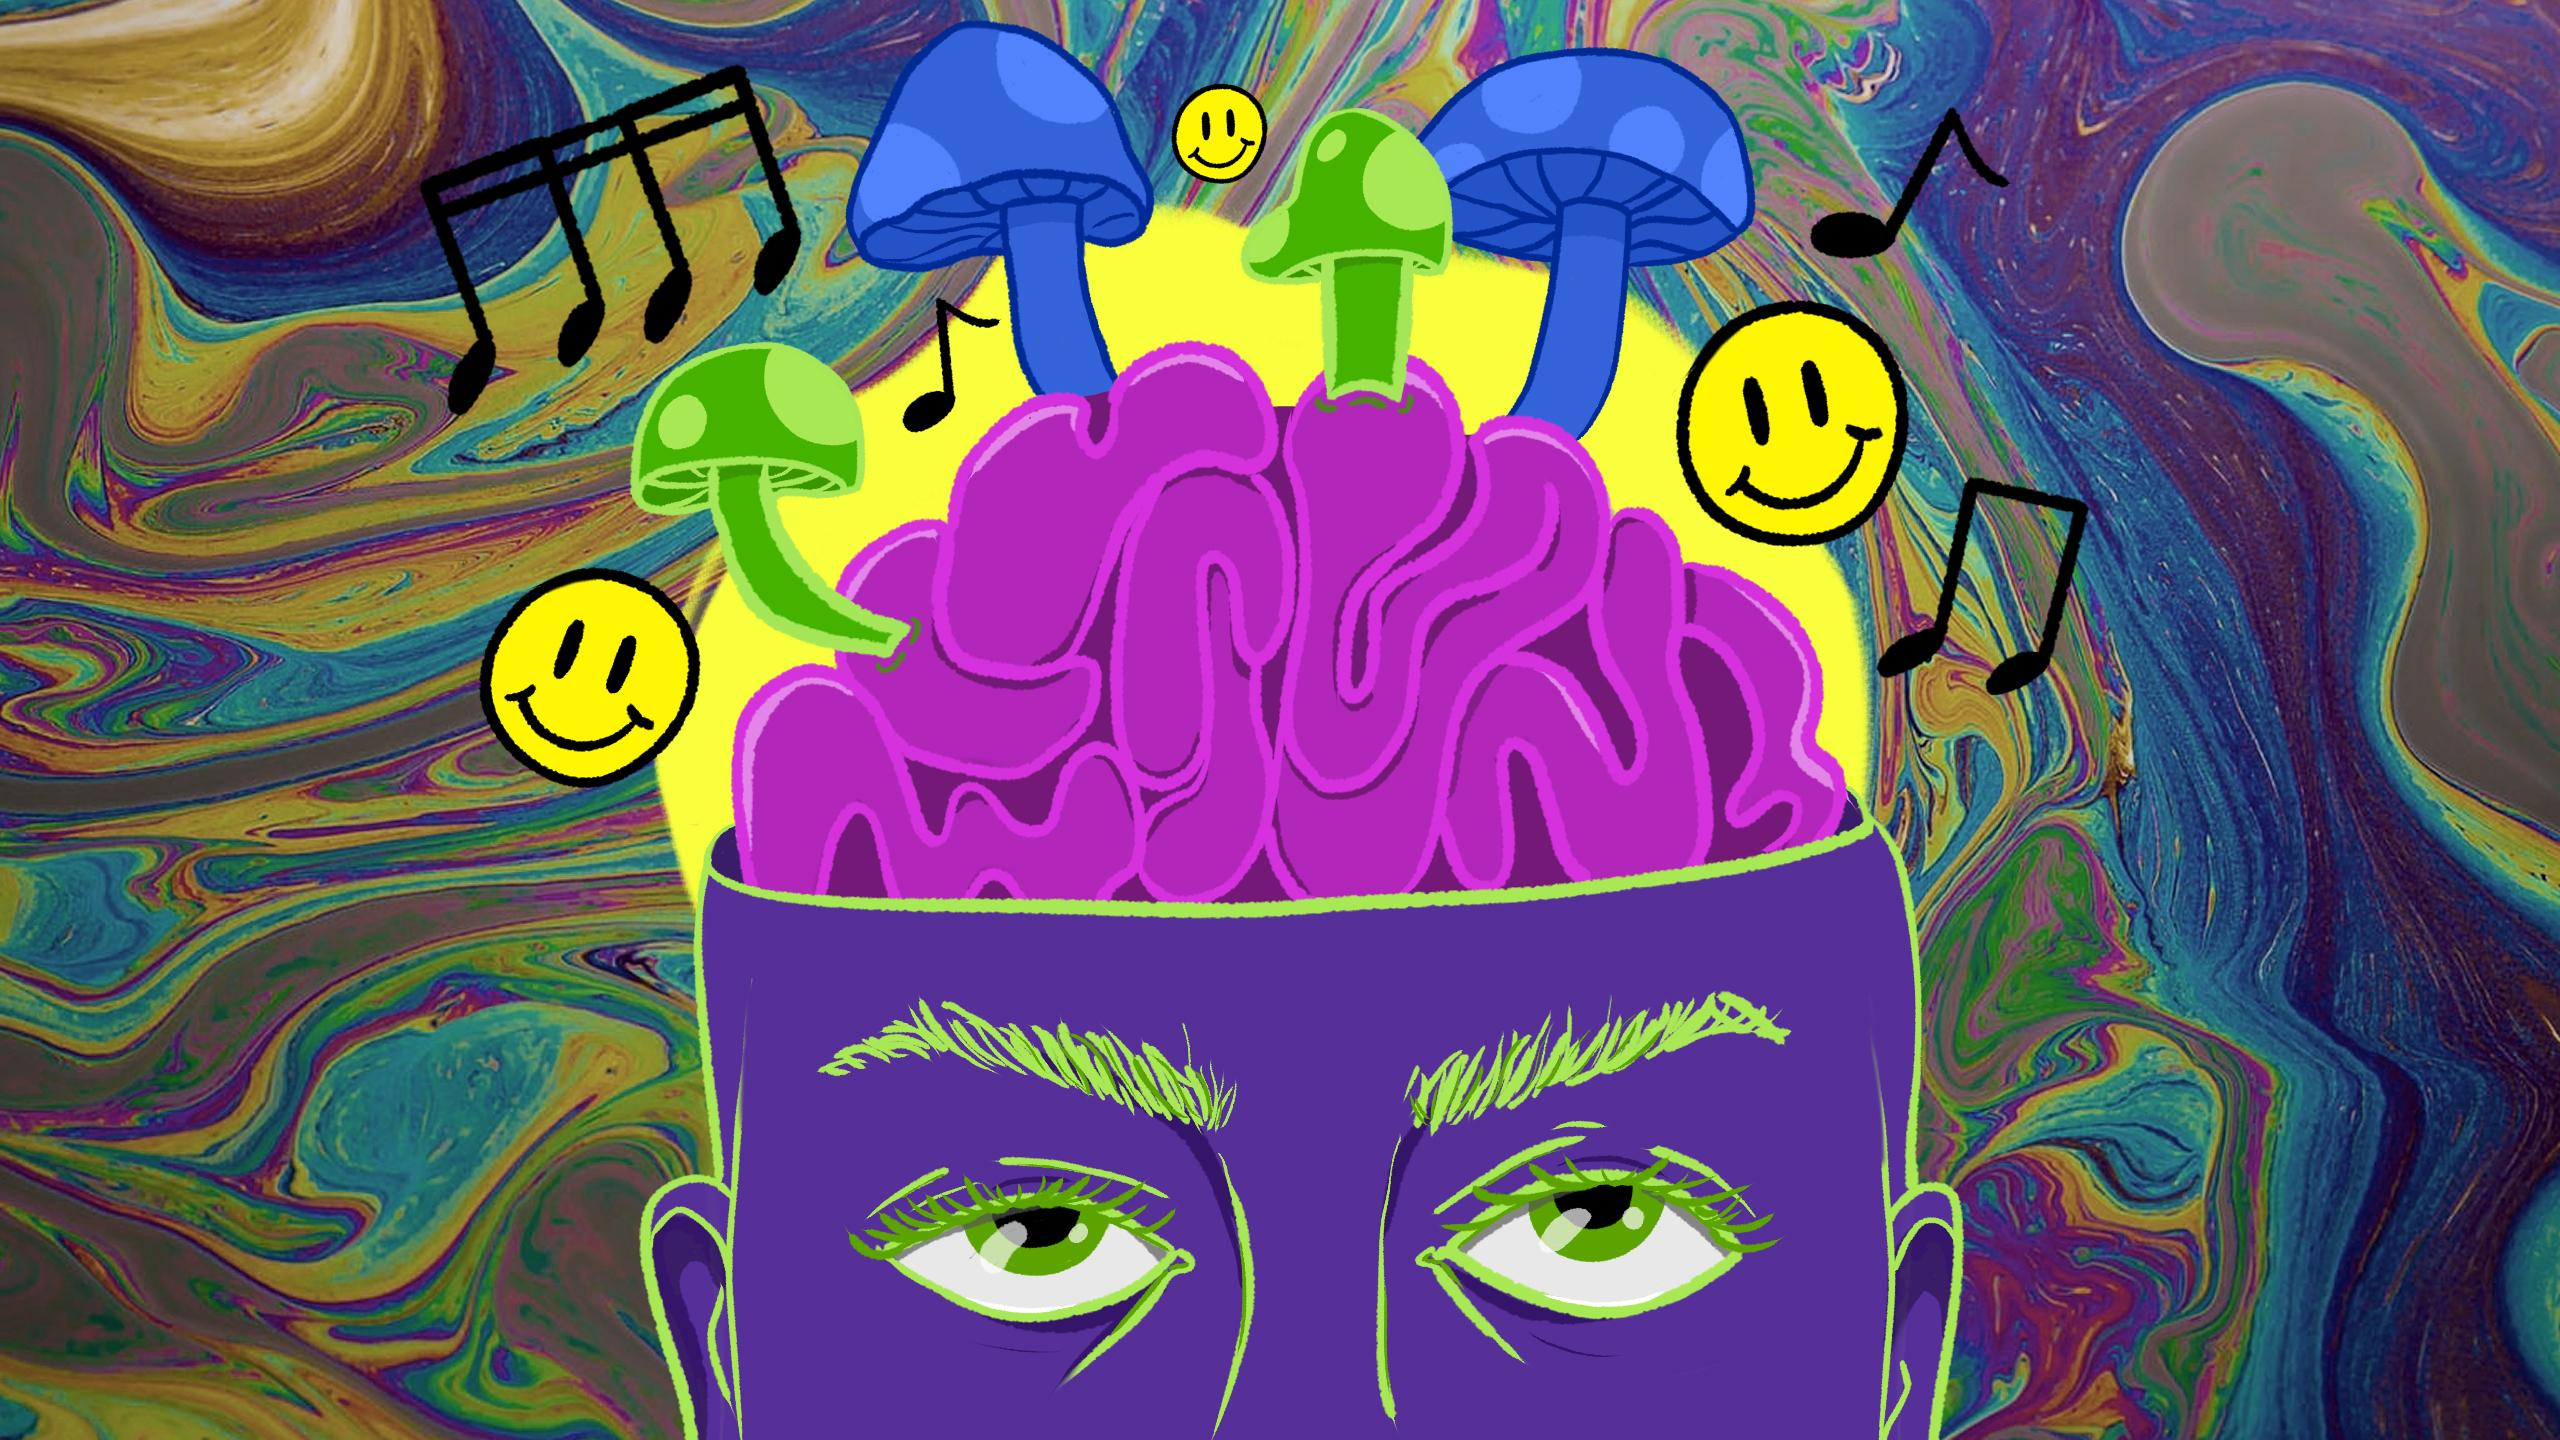 Illustration of a person's head with mushrooms, smiley faces and music notes coming out of their brain.